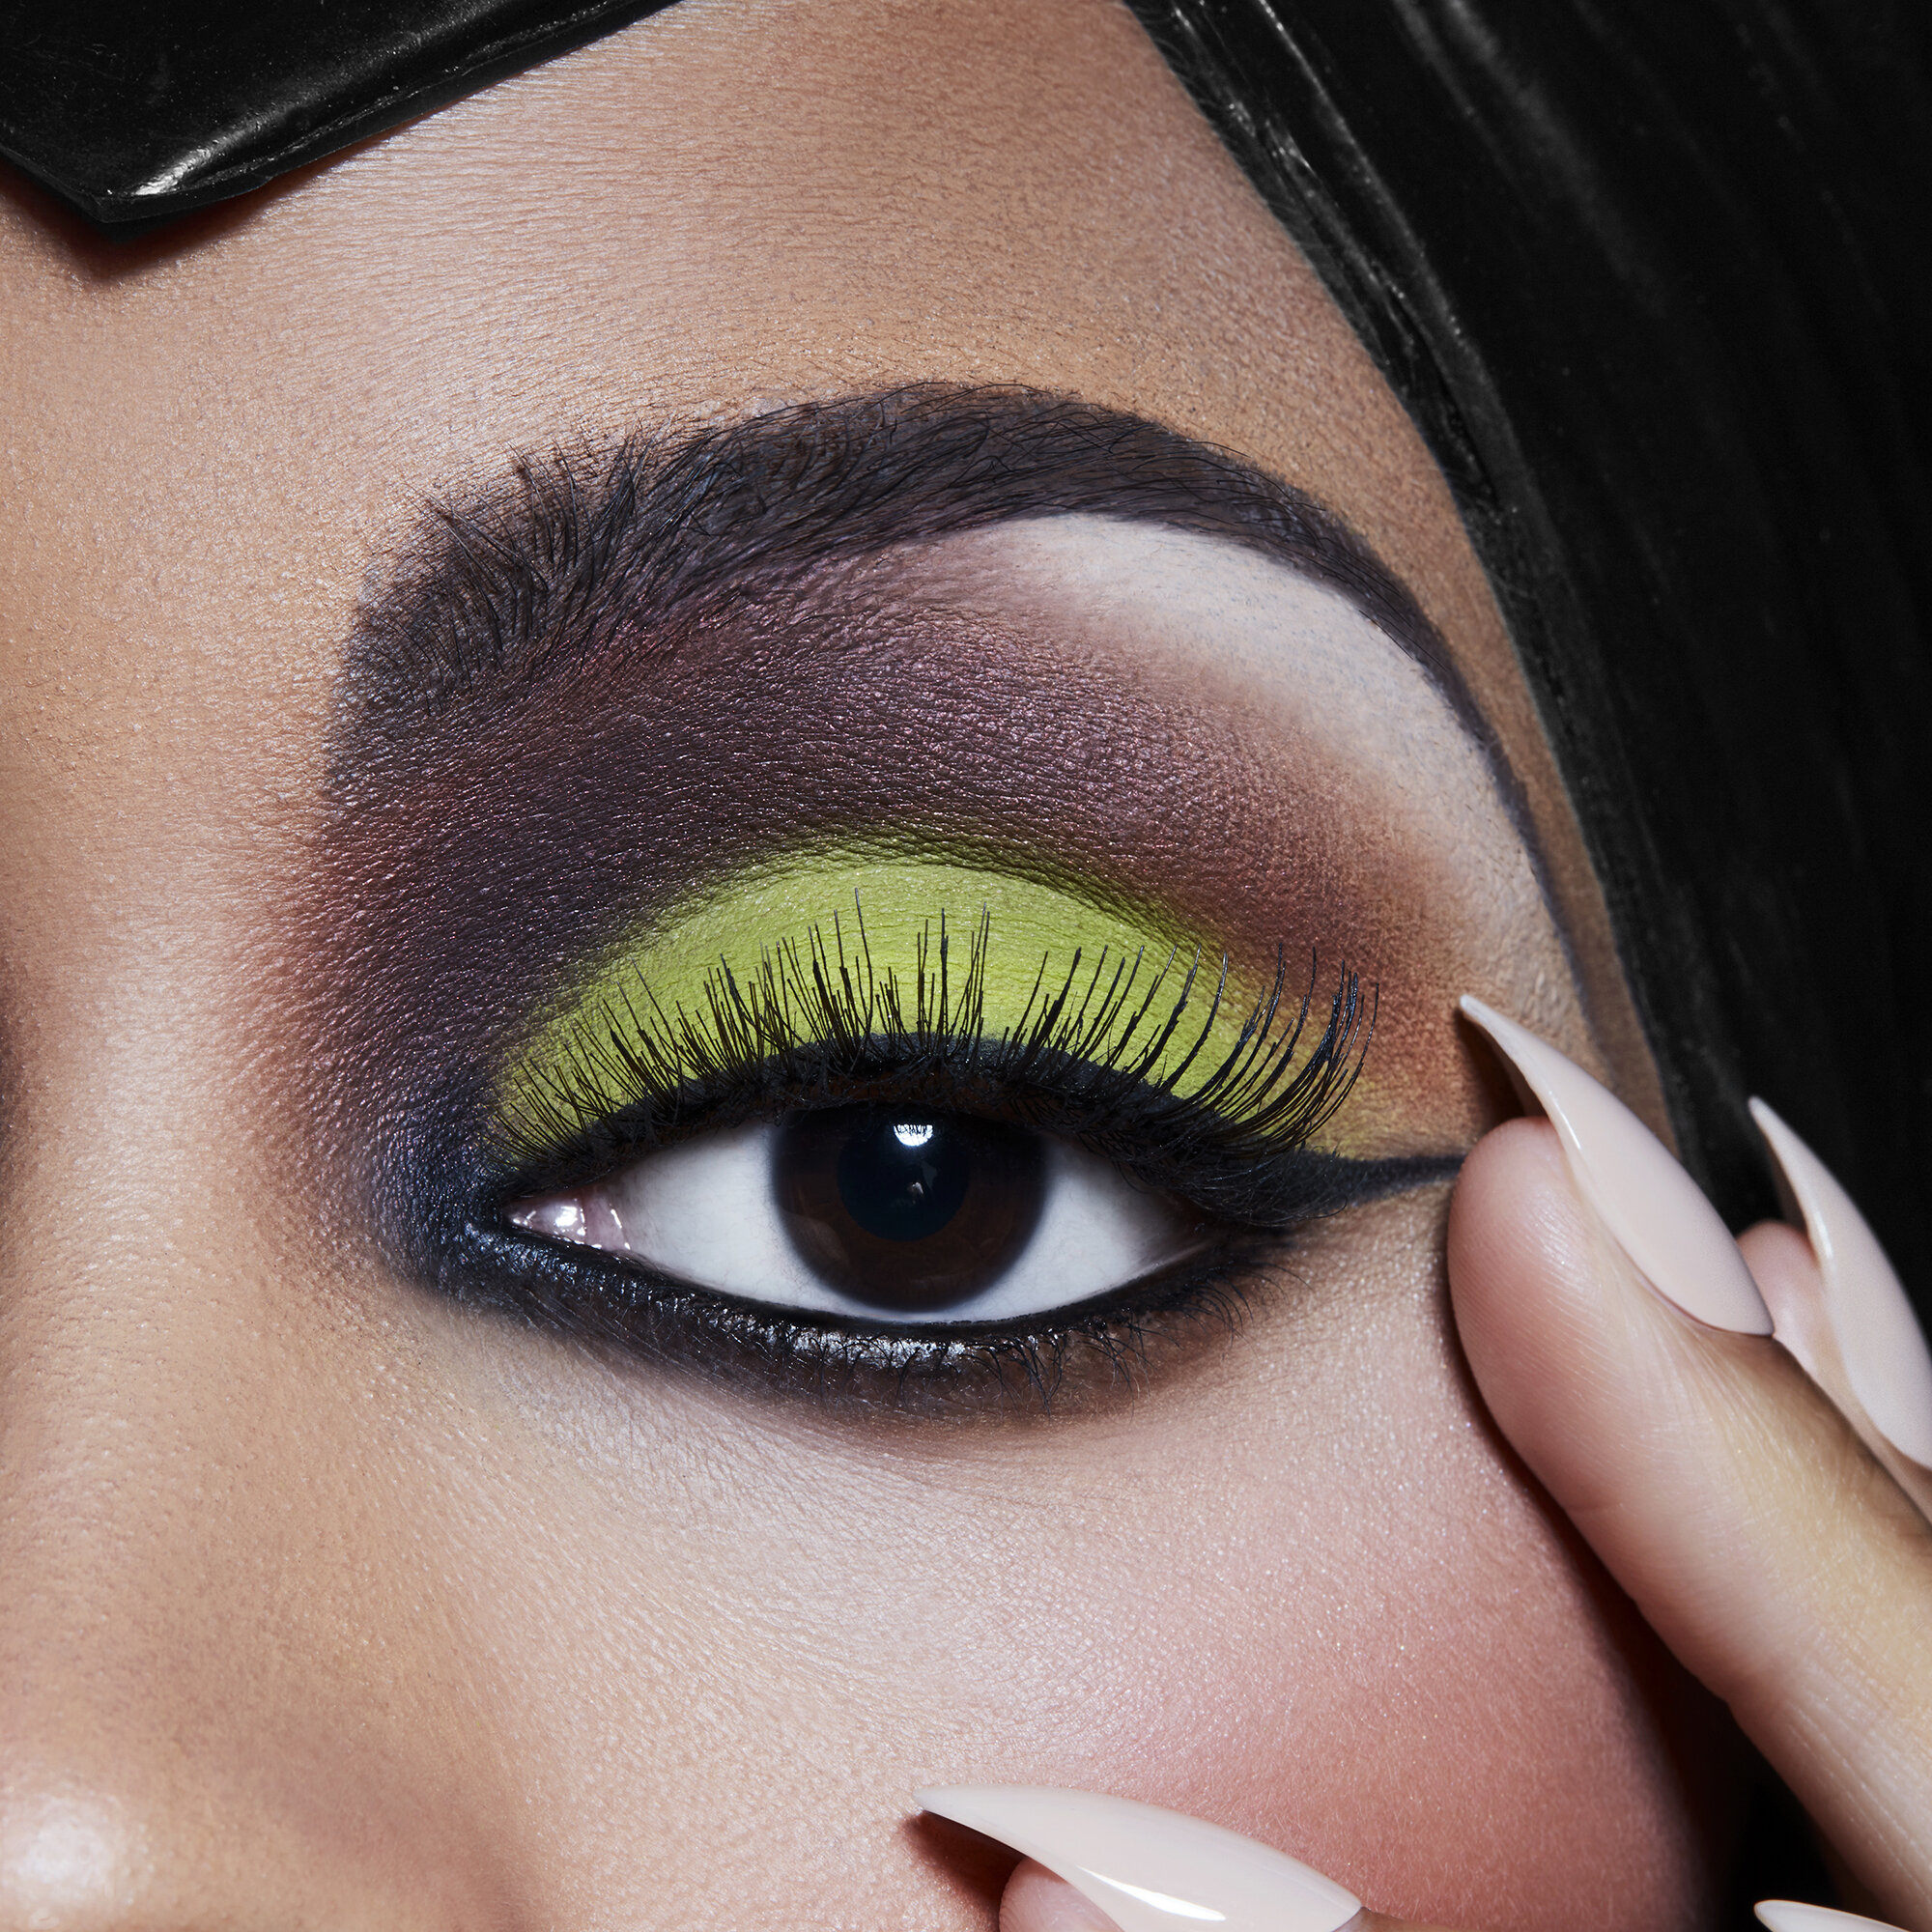 191031_MacCosmetics_Maleficent_Eye_Evil_By_BriJohnsonStudios.jpg